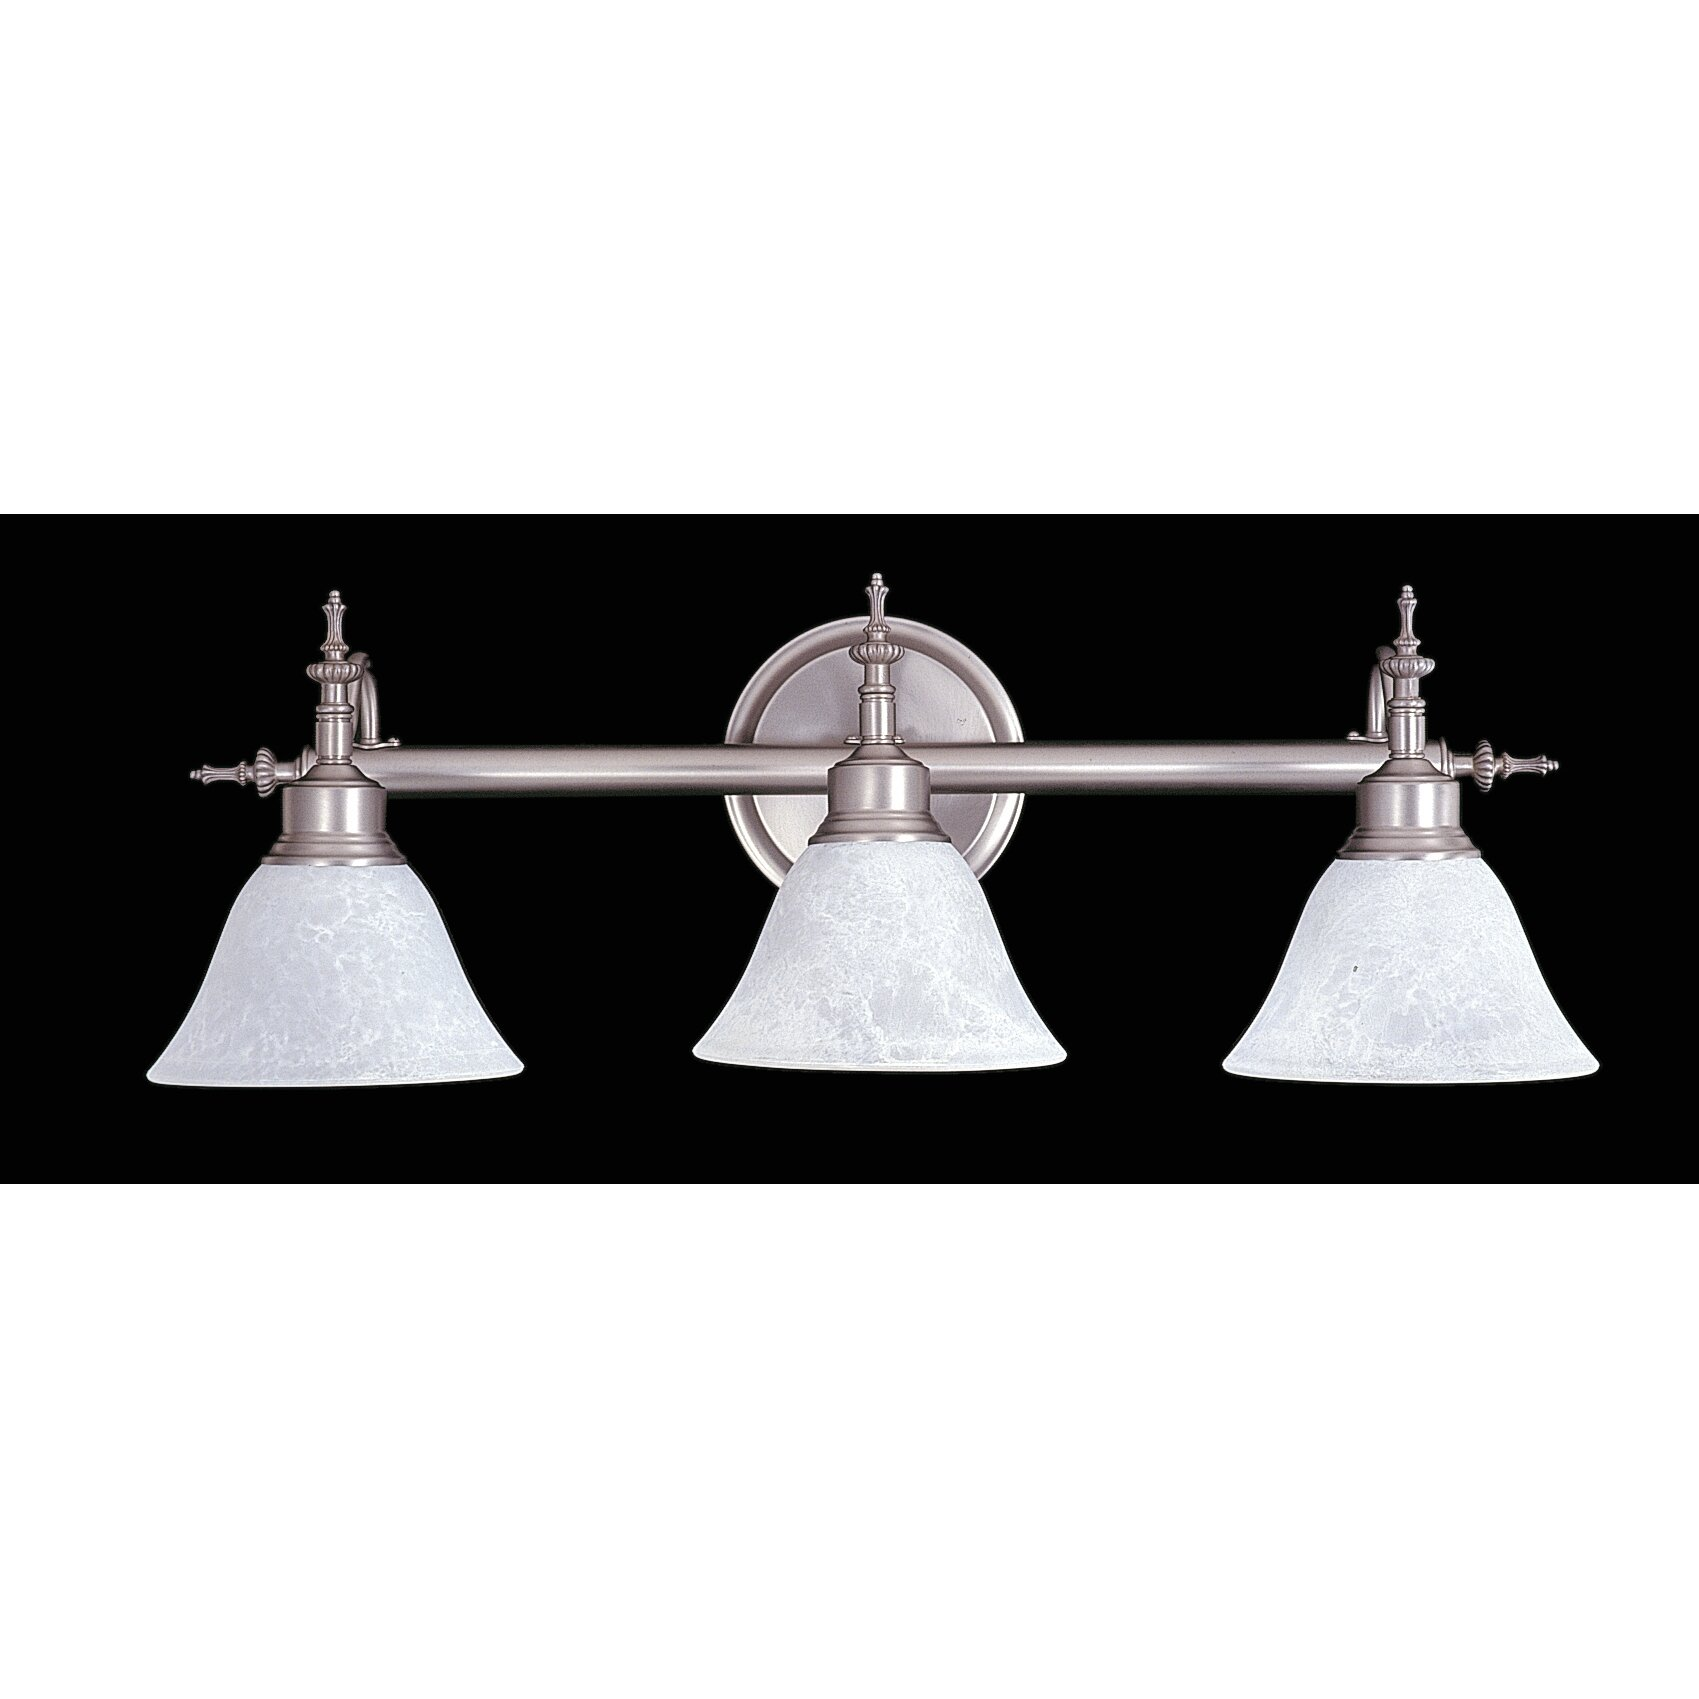 black forest 3 light bath marble glass vanity light by framburg